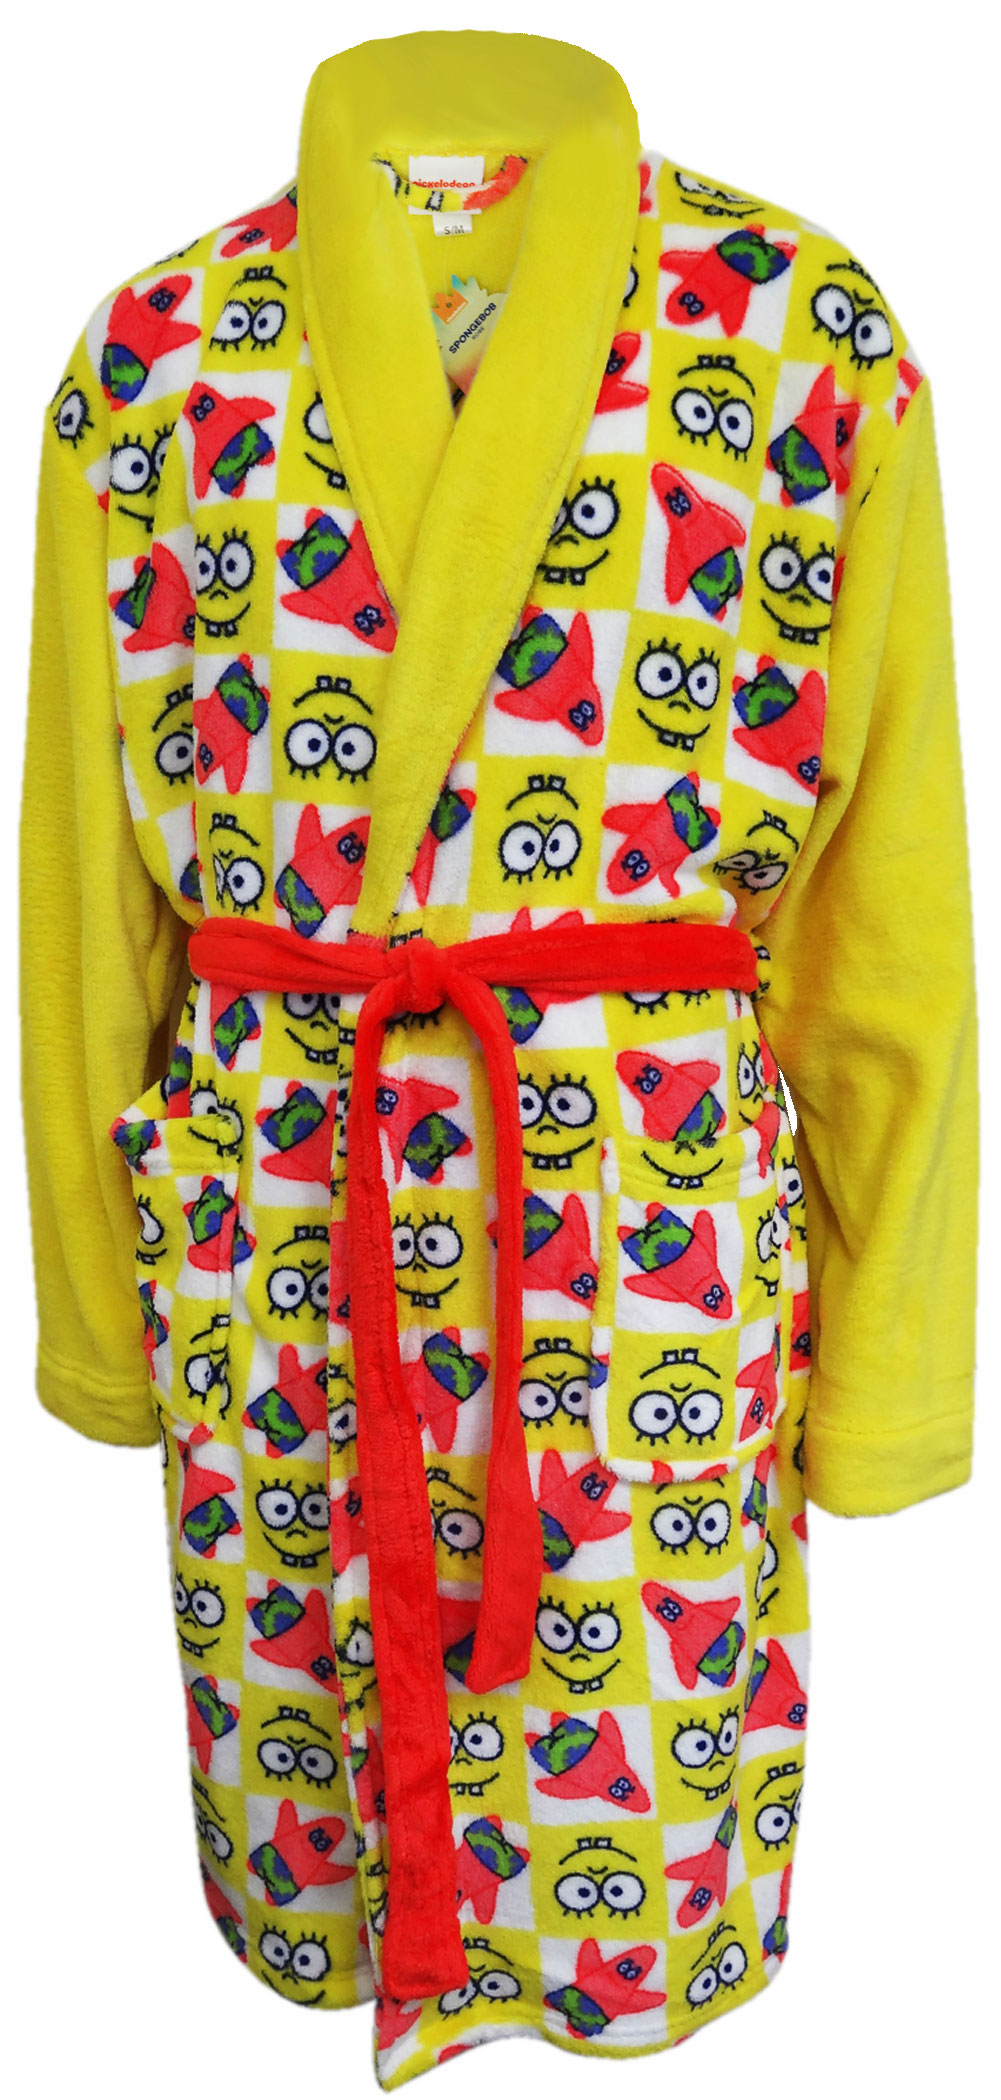 Image of SpongeBob Squarepants Adult Plush Robe for men